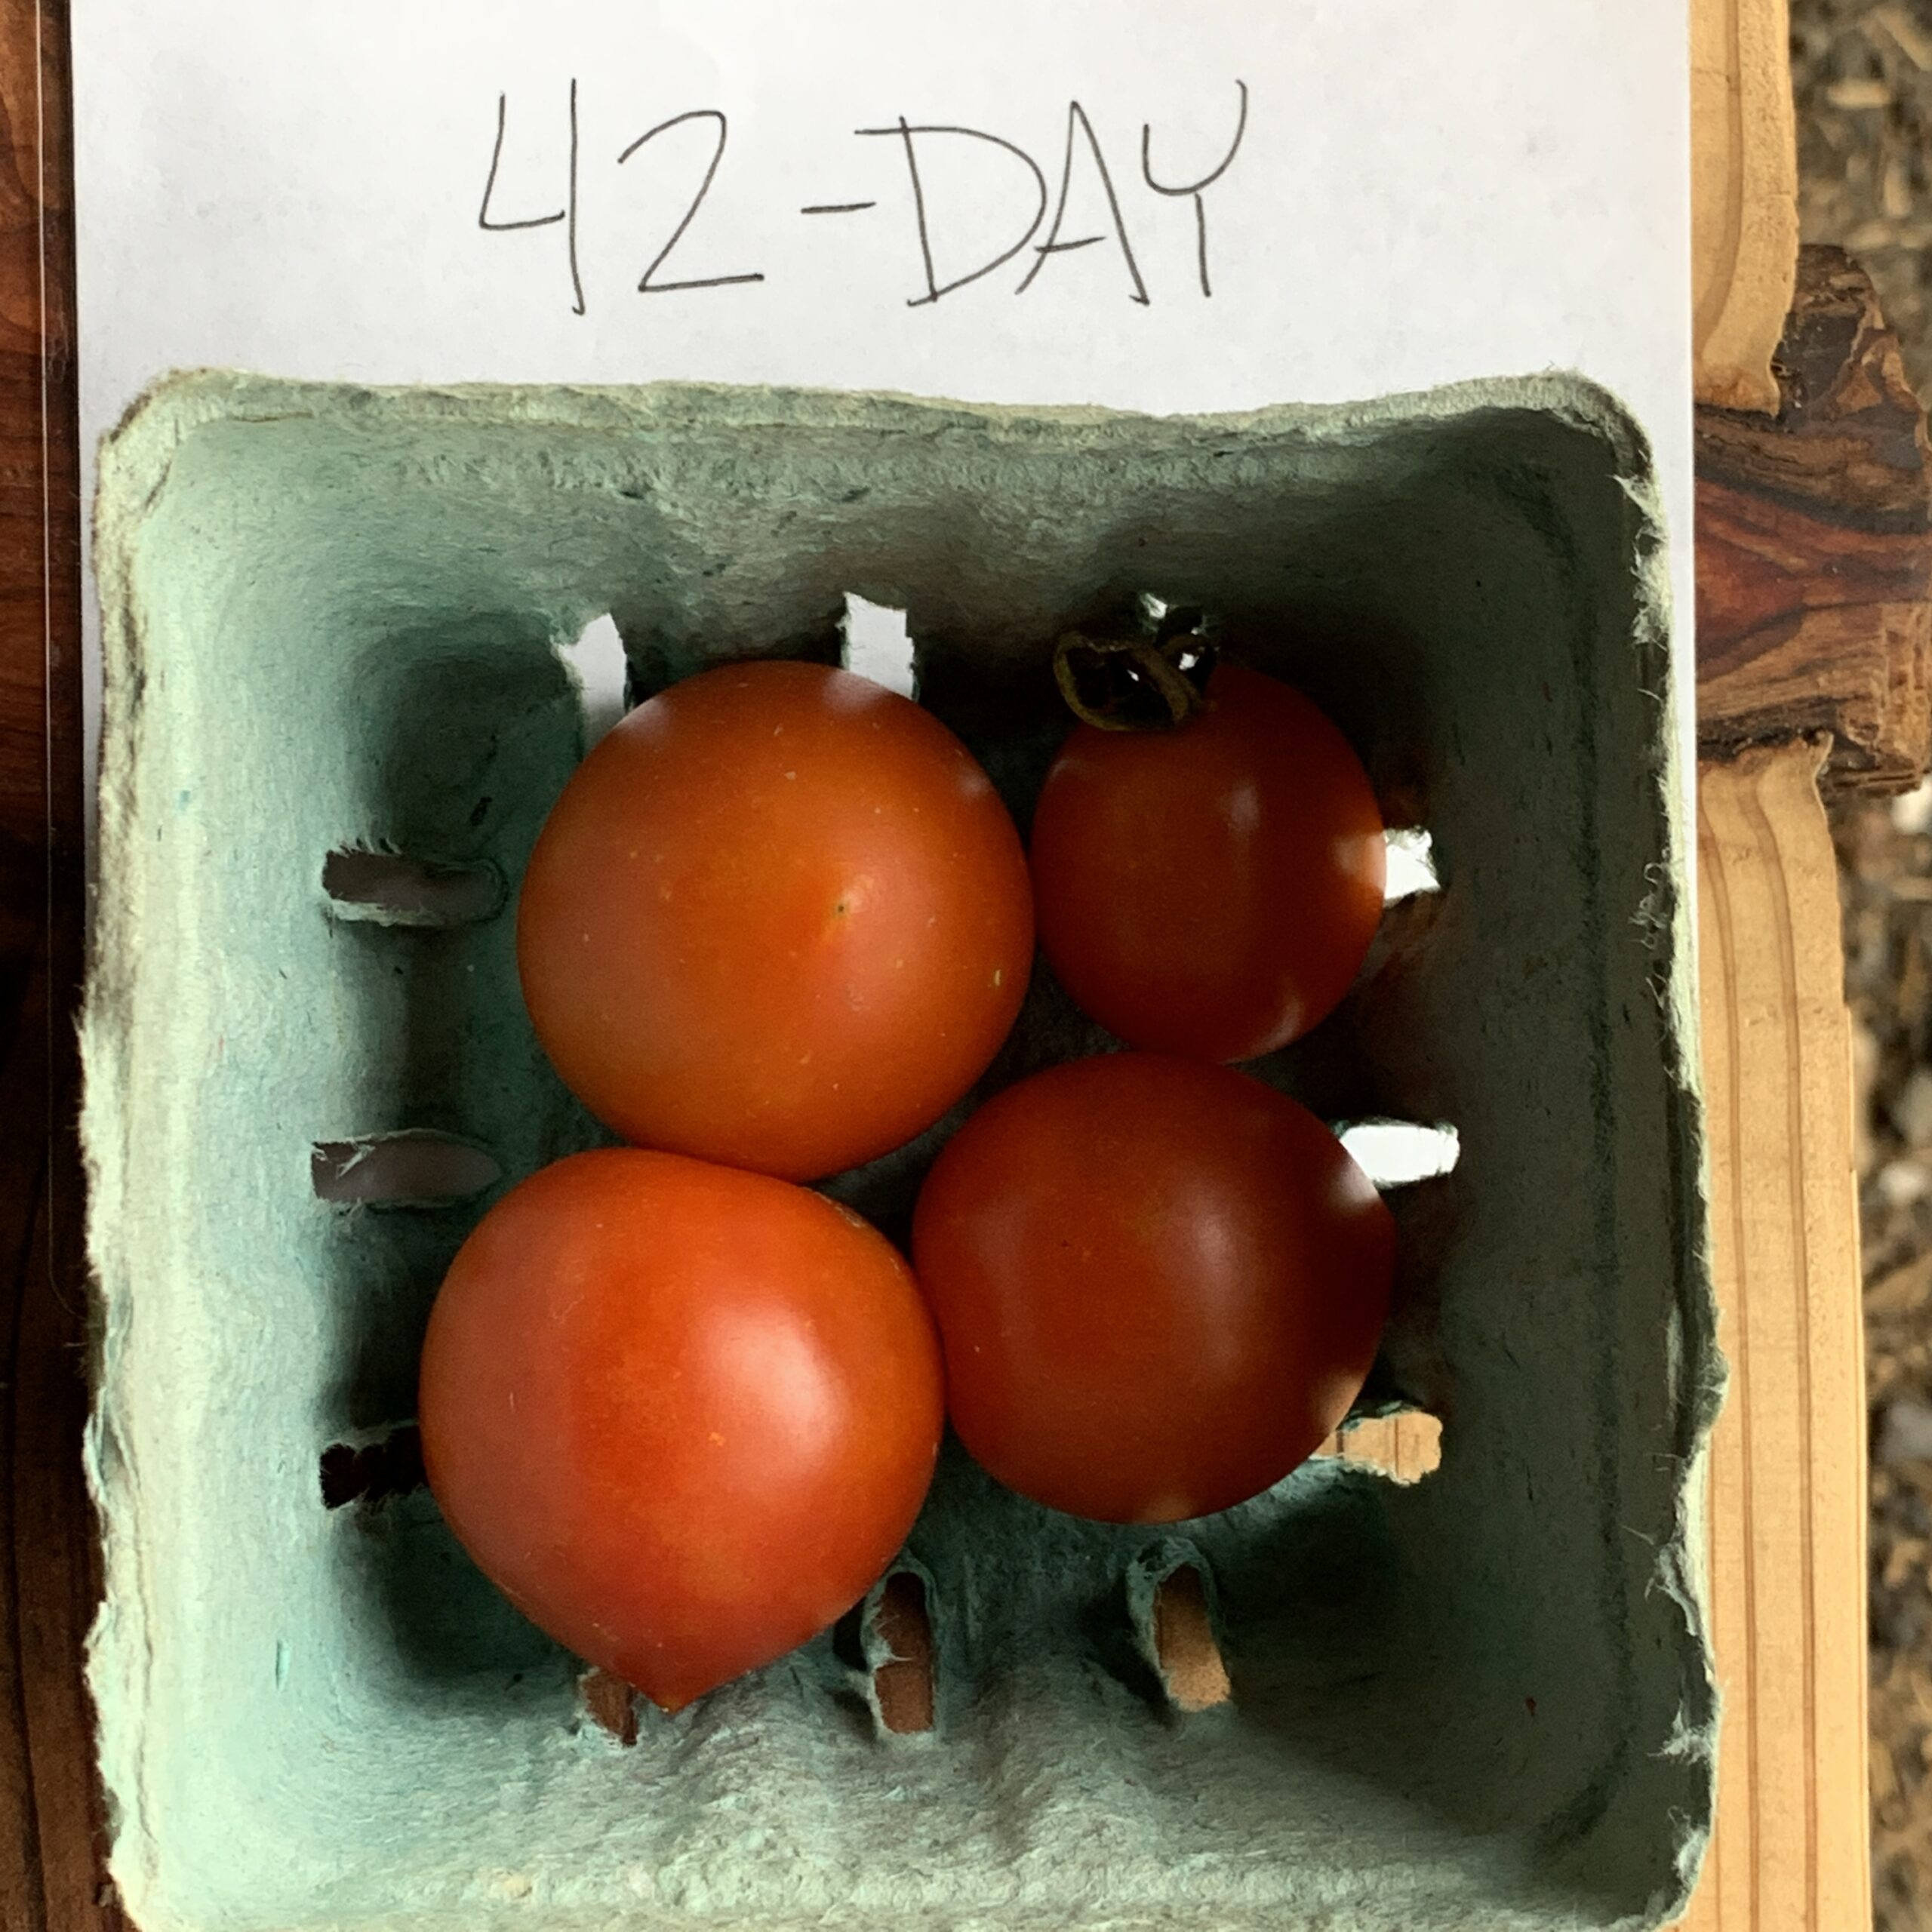 Image of 42-Day tomatoes